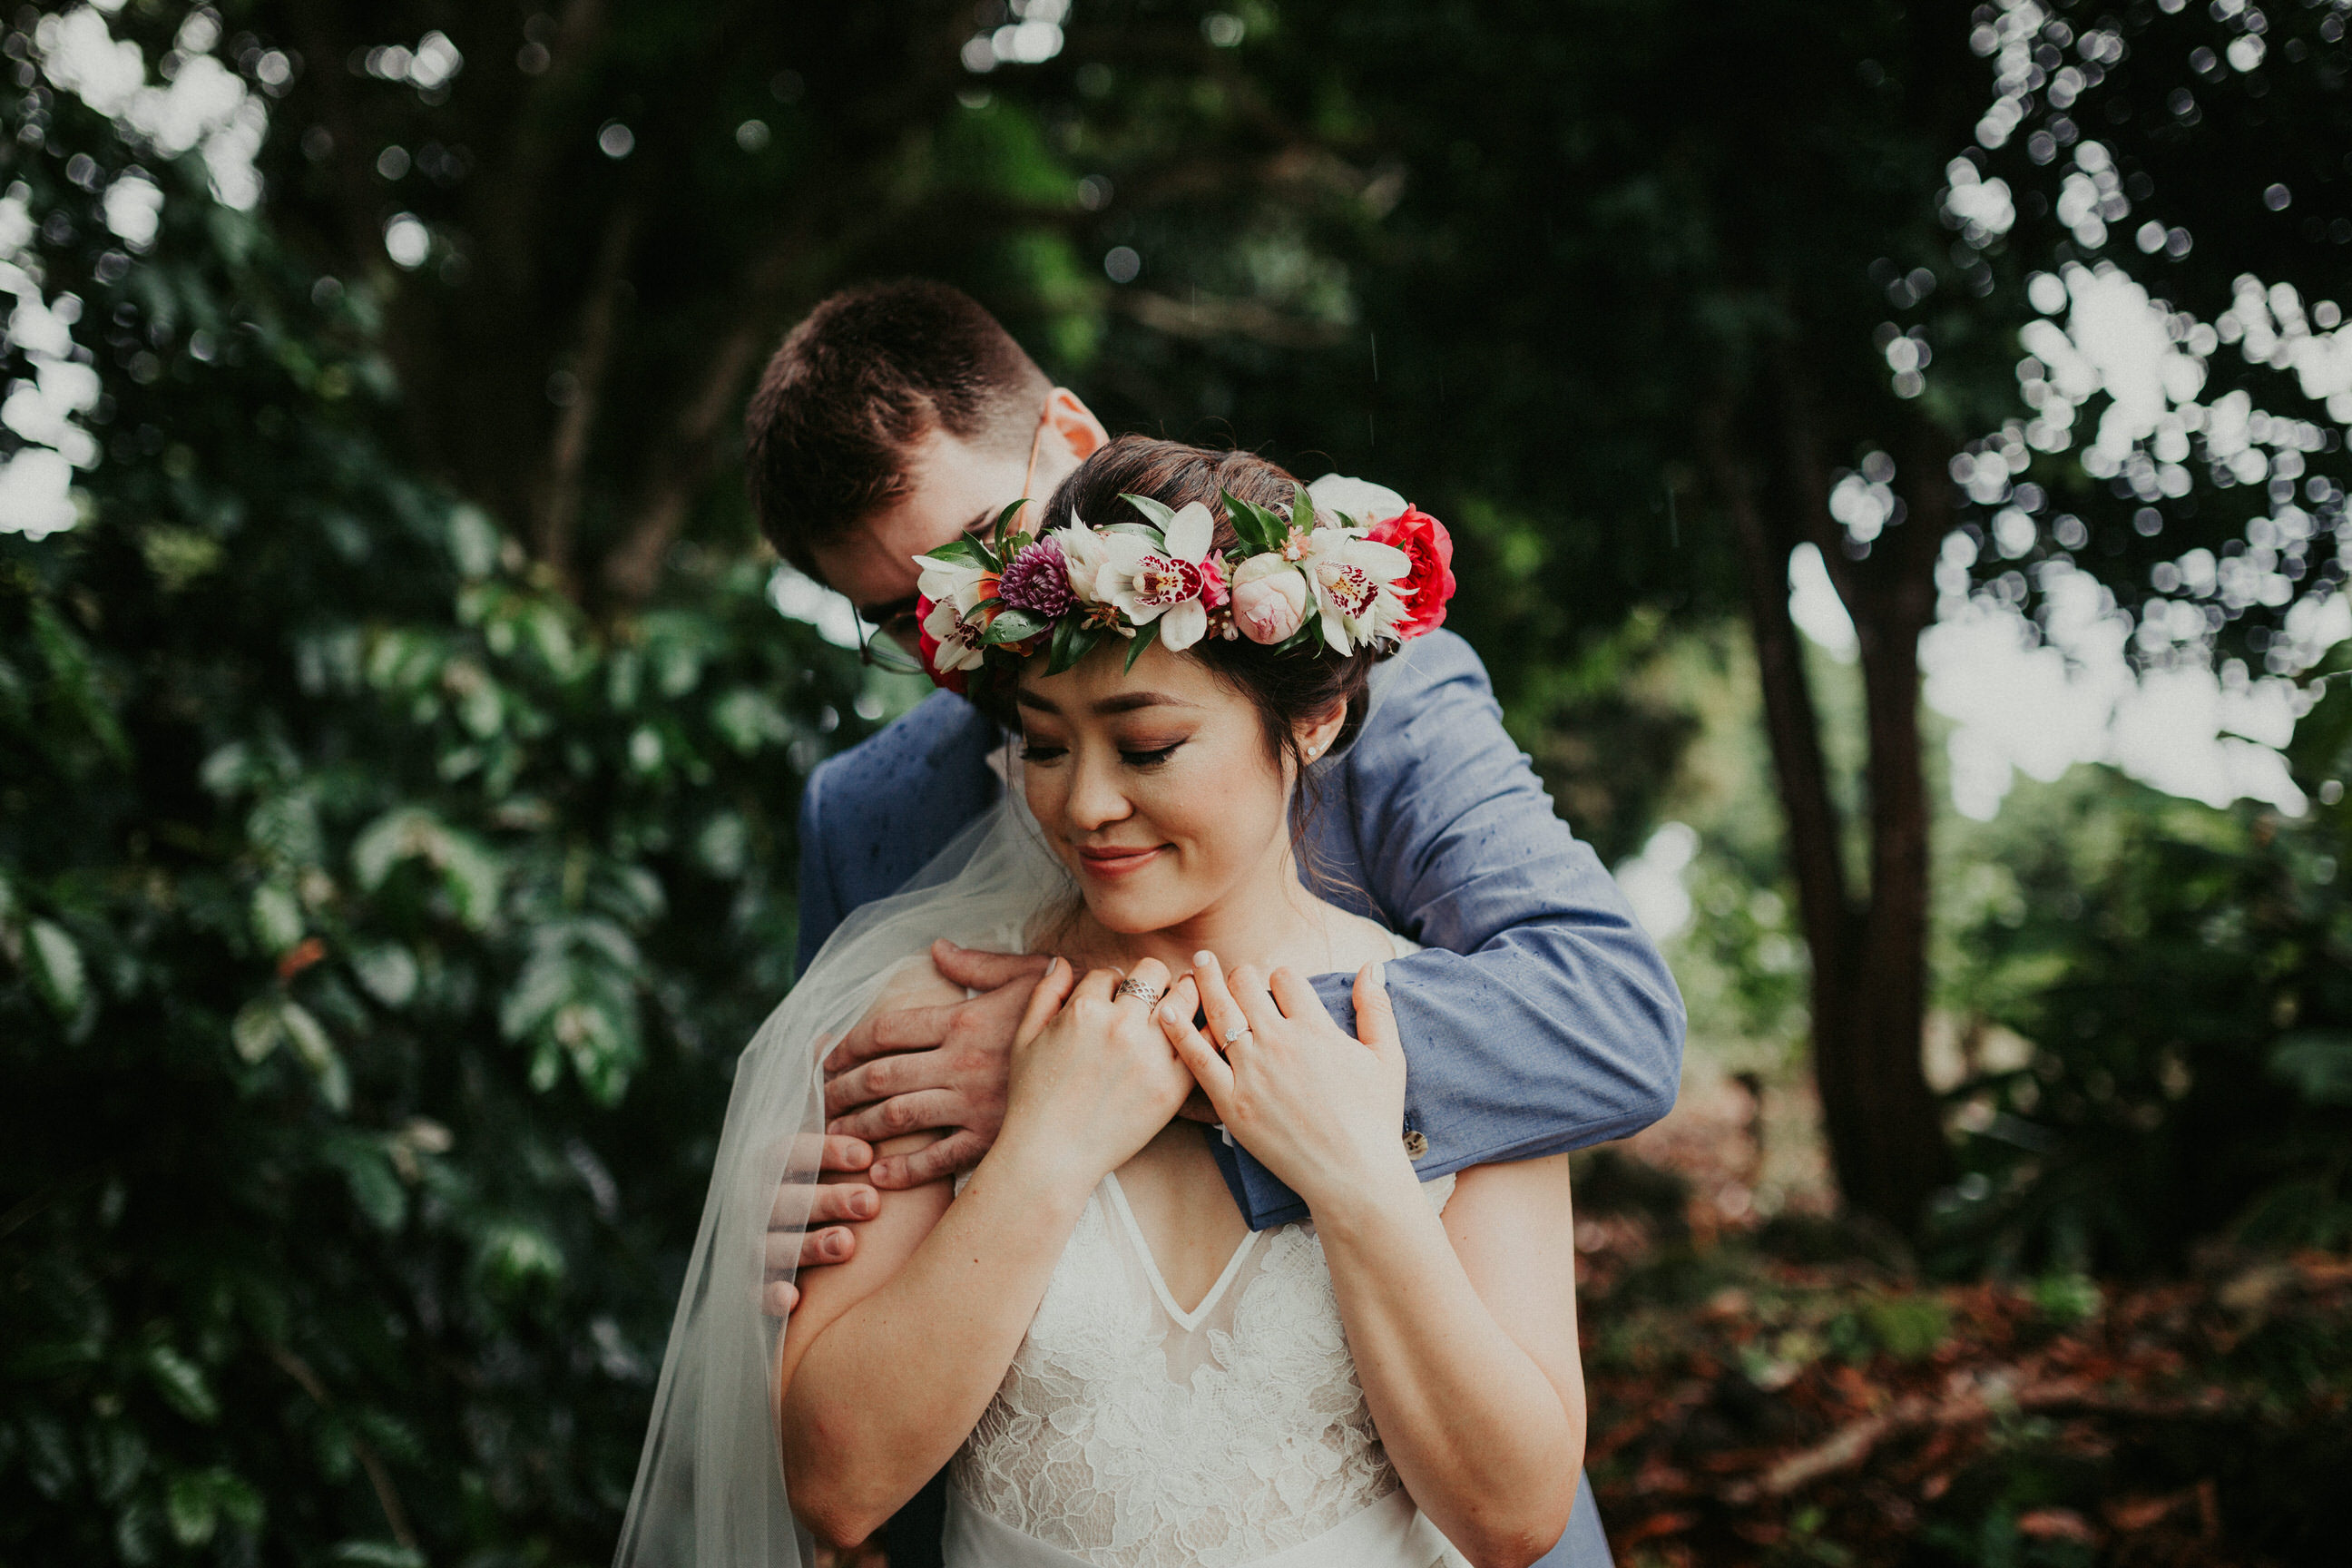 hawaii wedding, holualoa wddings, daylight mind weddings, kona wedding, big island wedding, hawaii wedding photographer